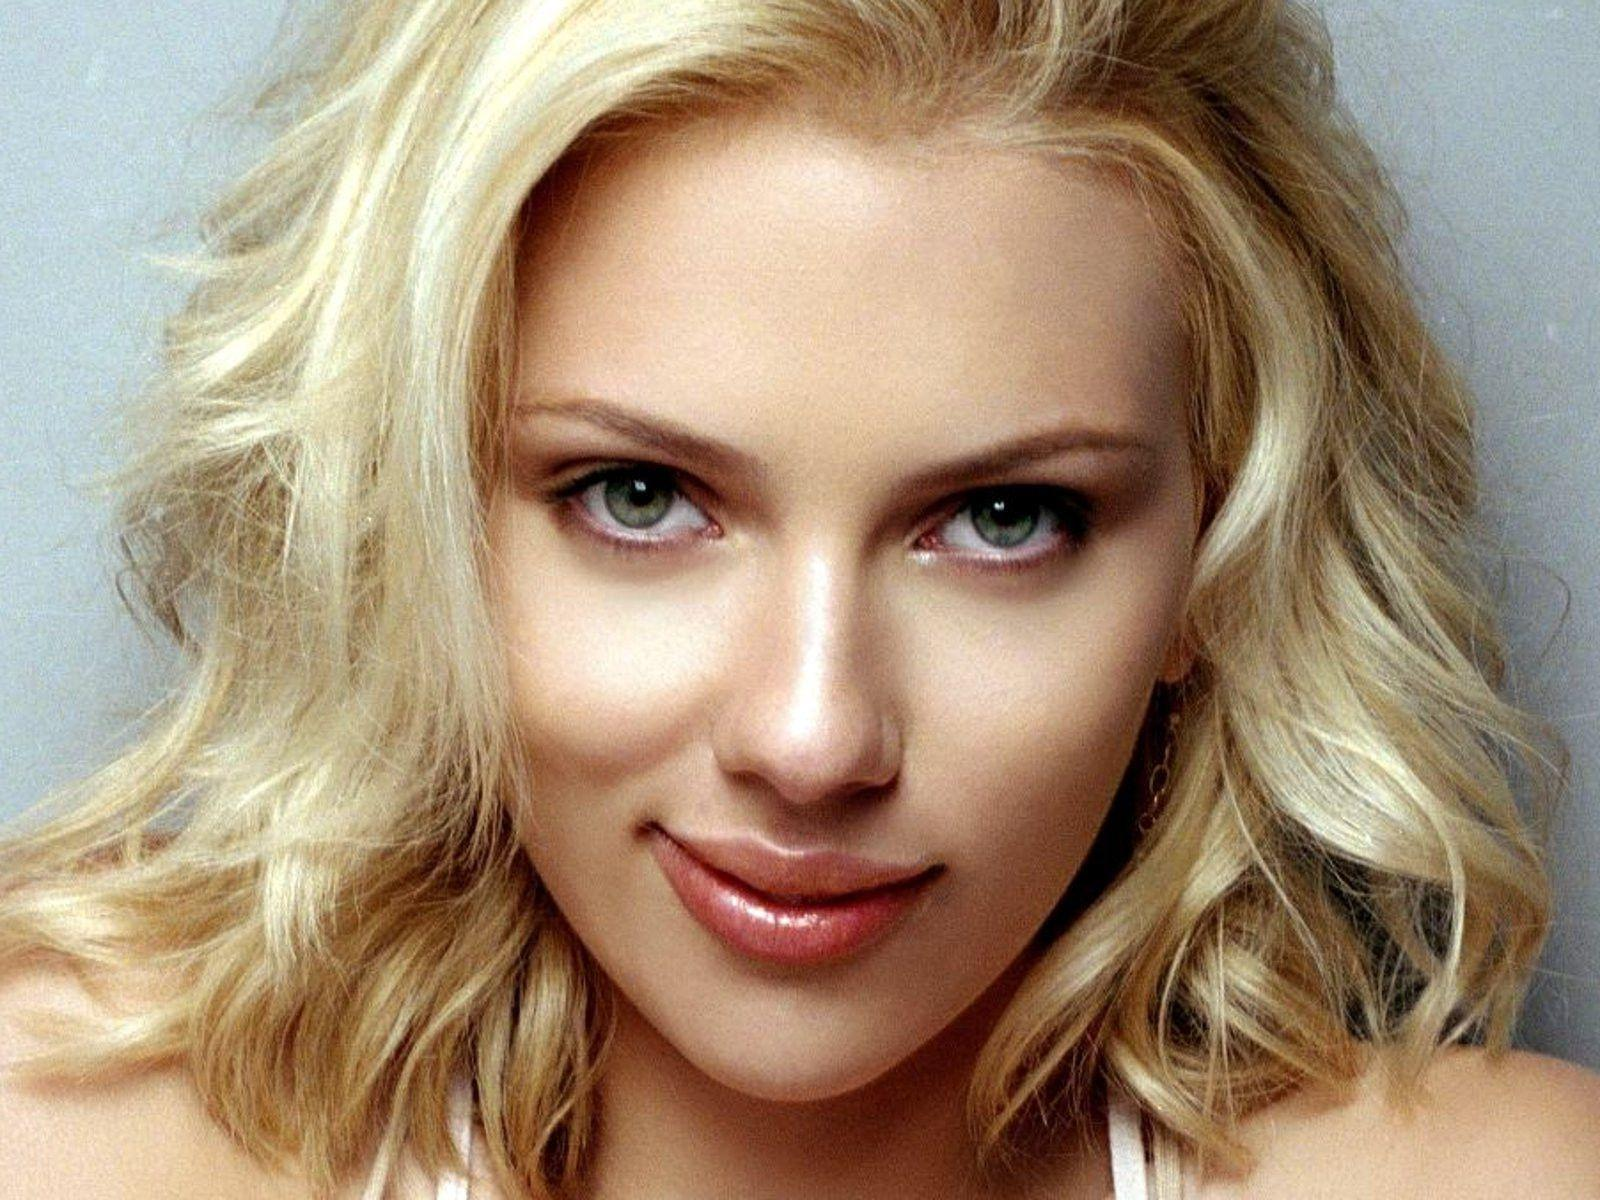 Scarlett Johansson Wallpapers - Celebrities Wallpapers (7928 ...